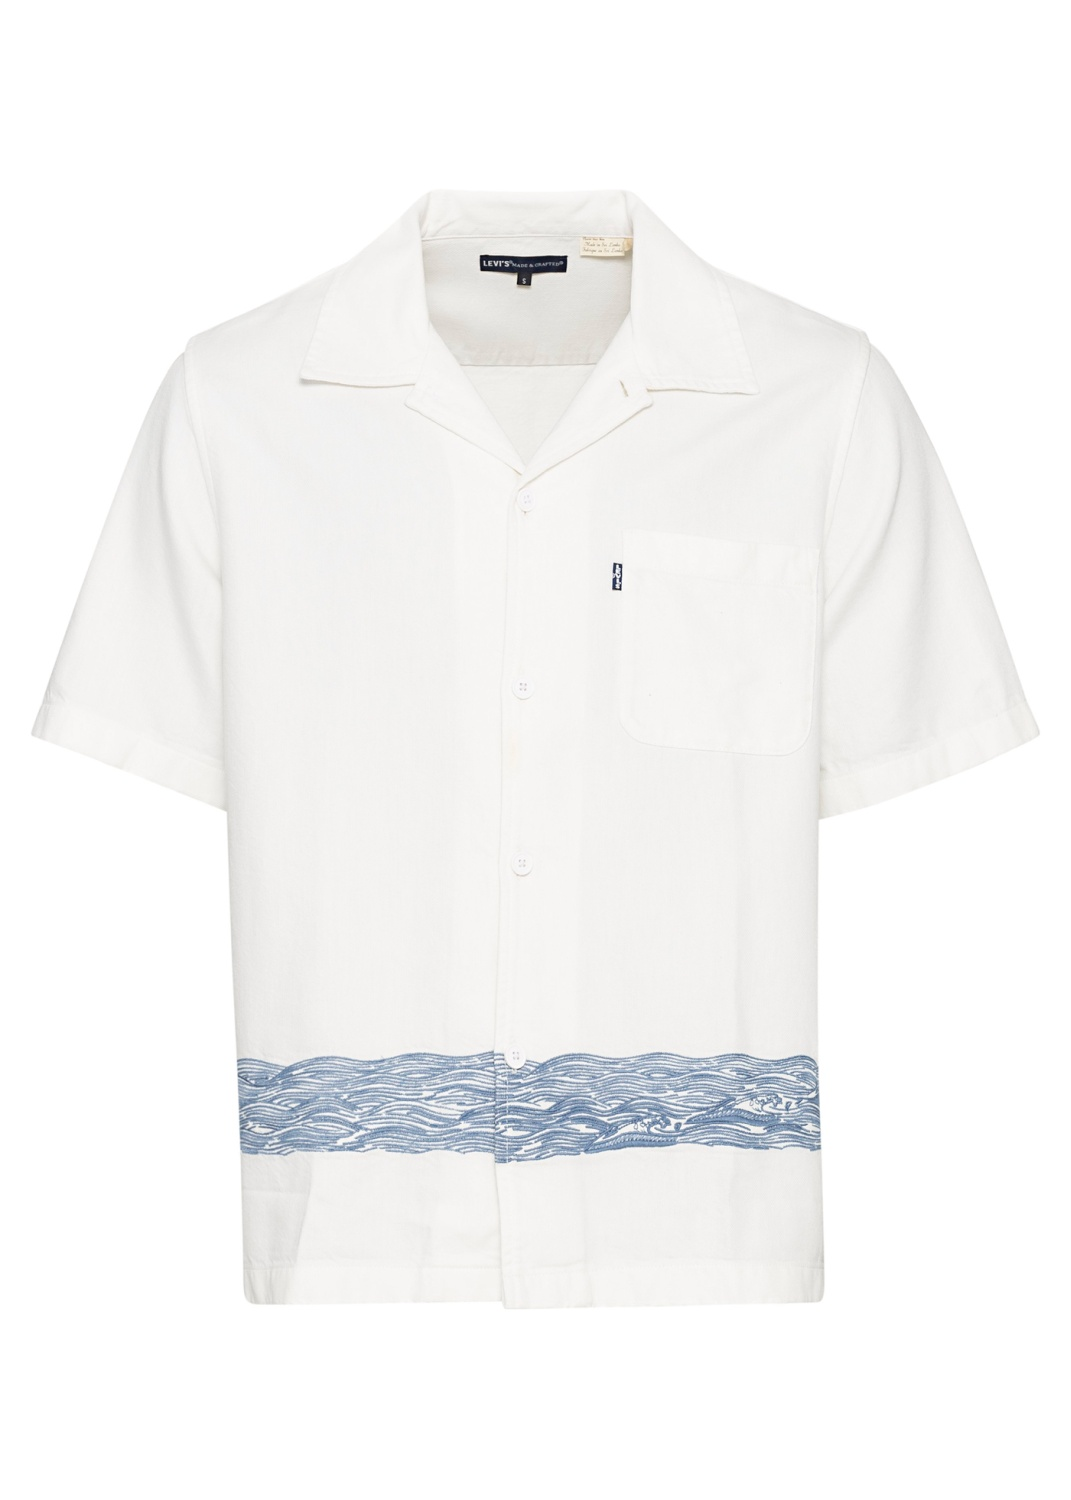 LMC RELAXED CAMP SHIRT LMC CHA image number 0